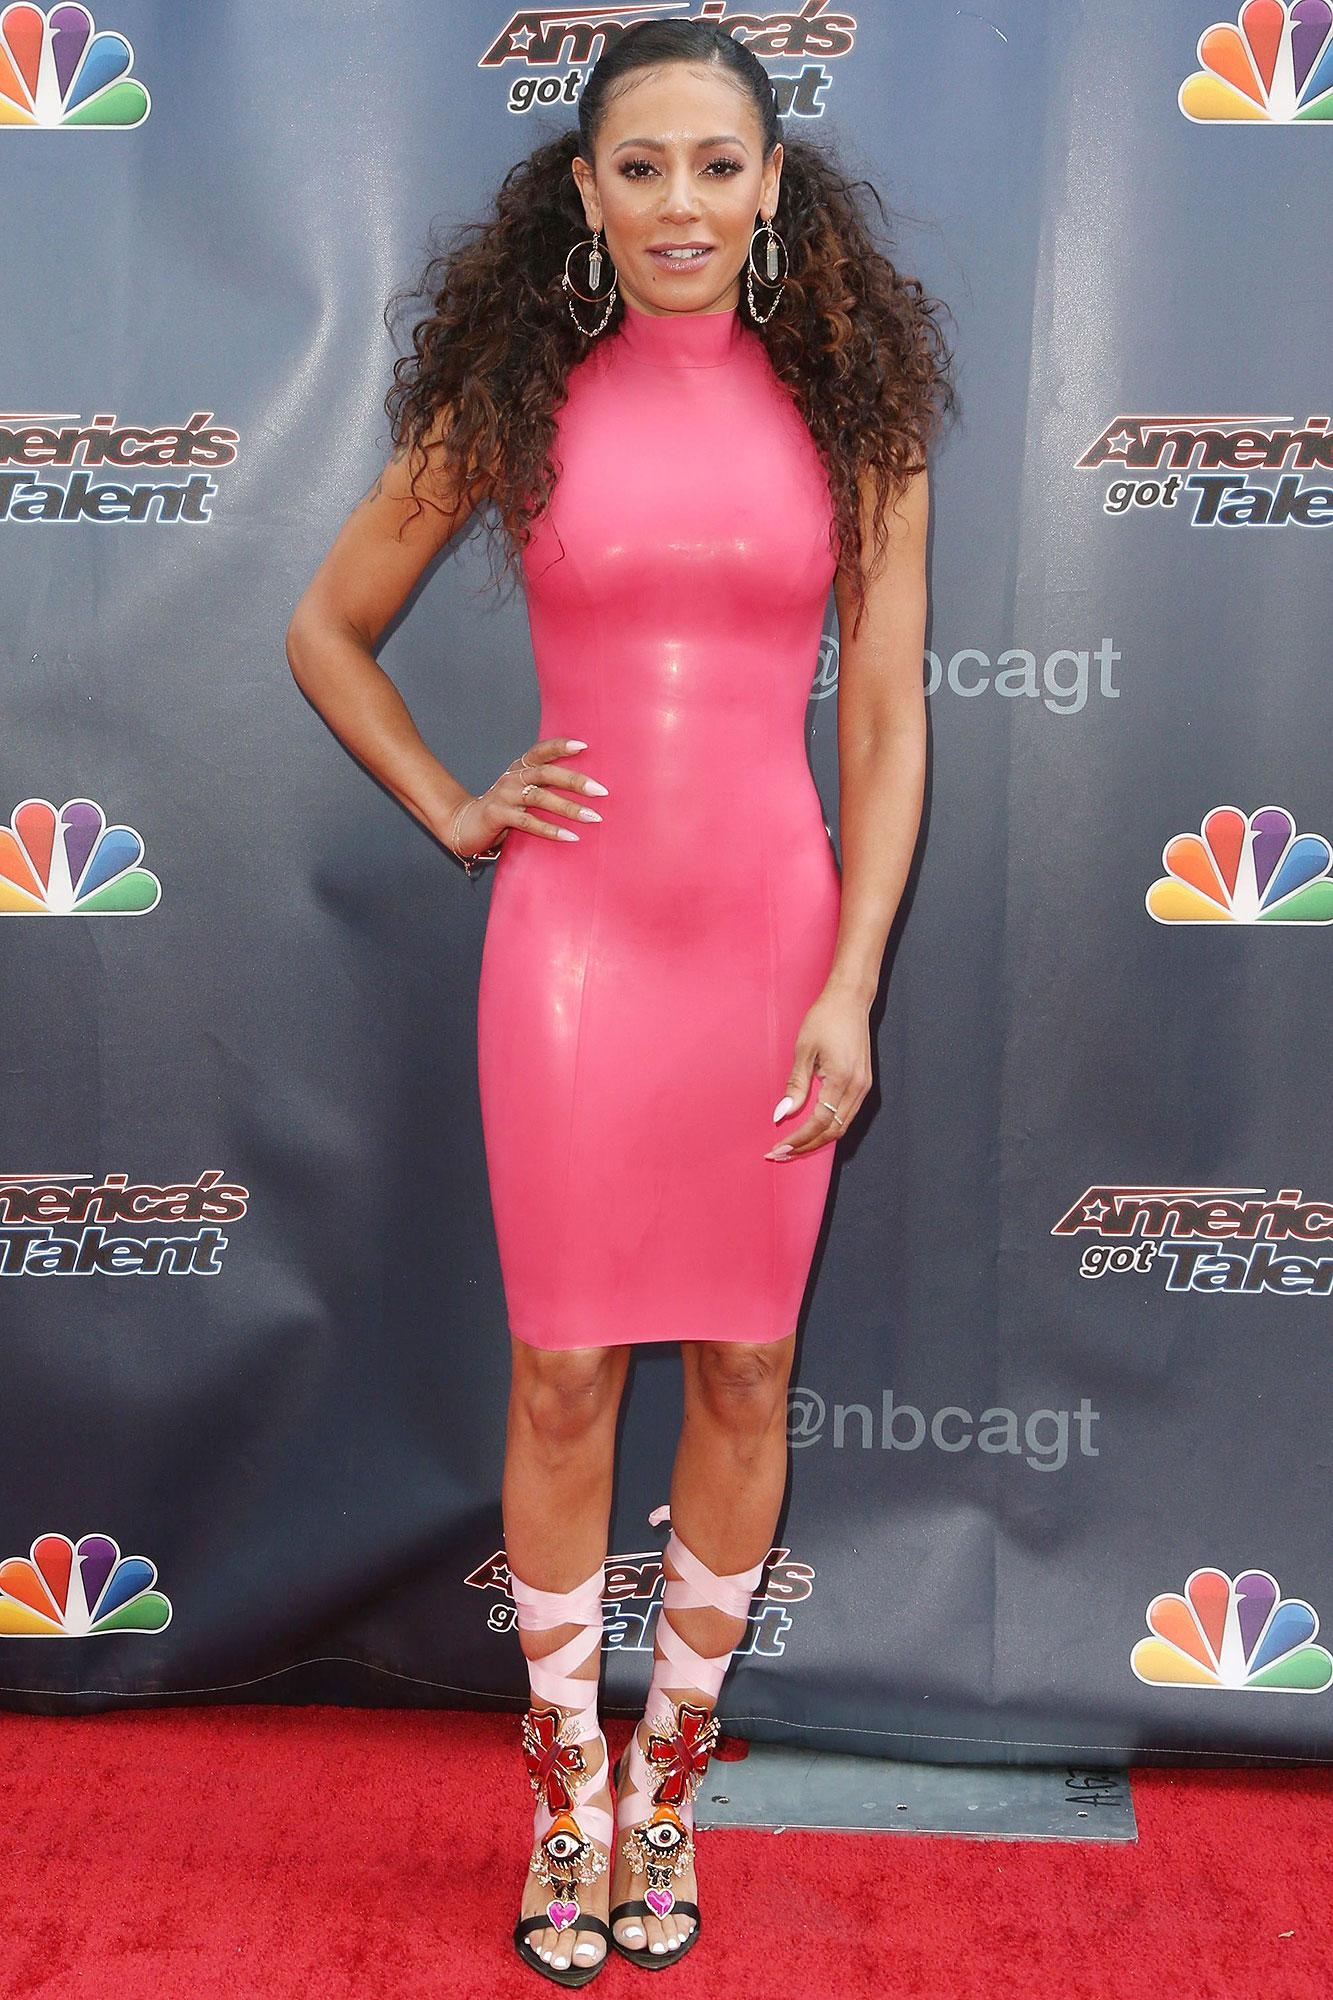 From Spice Girls To AGT: See The Evolution of Spice Girl Mel B's Style